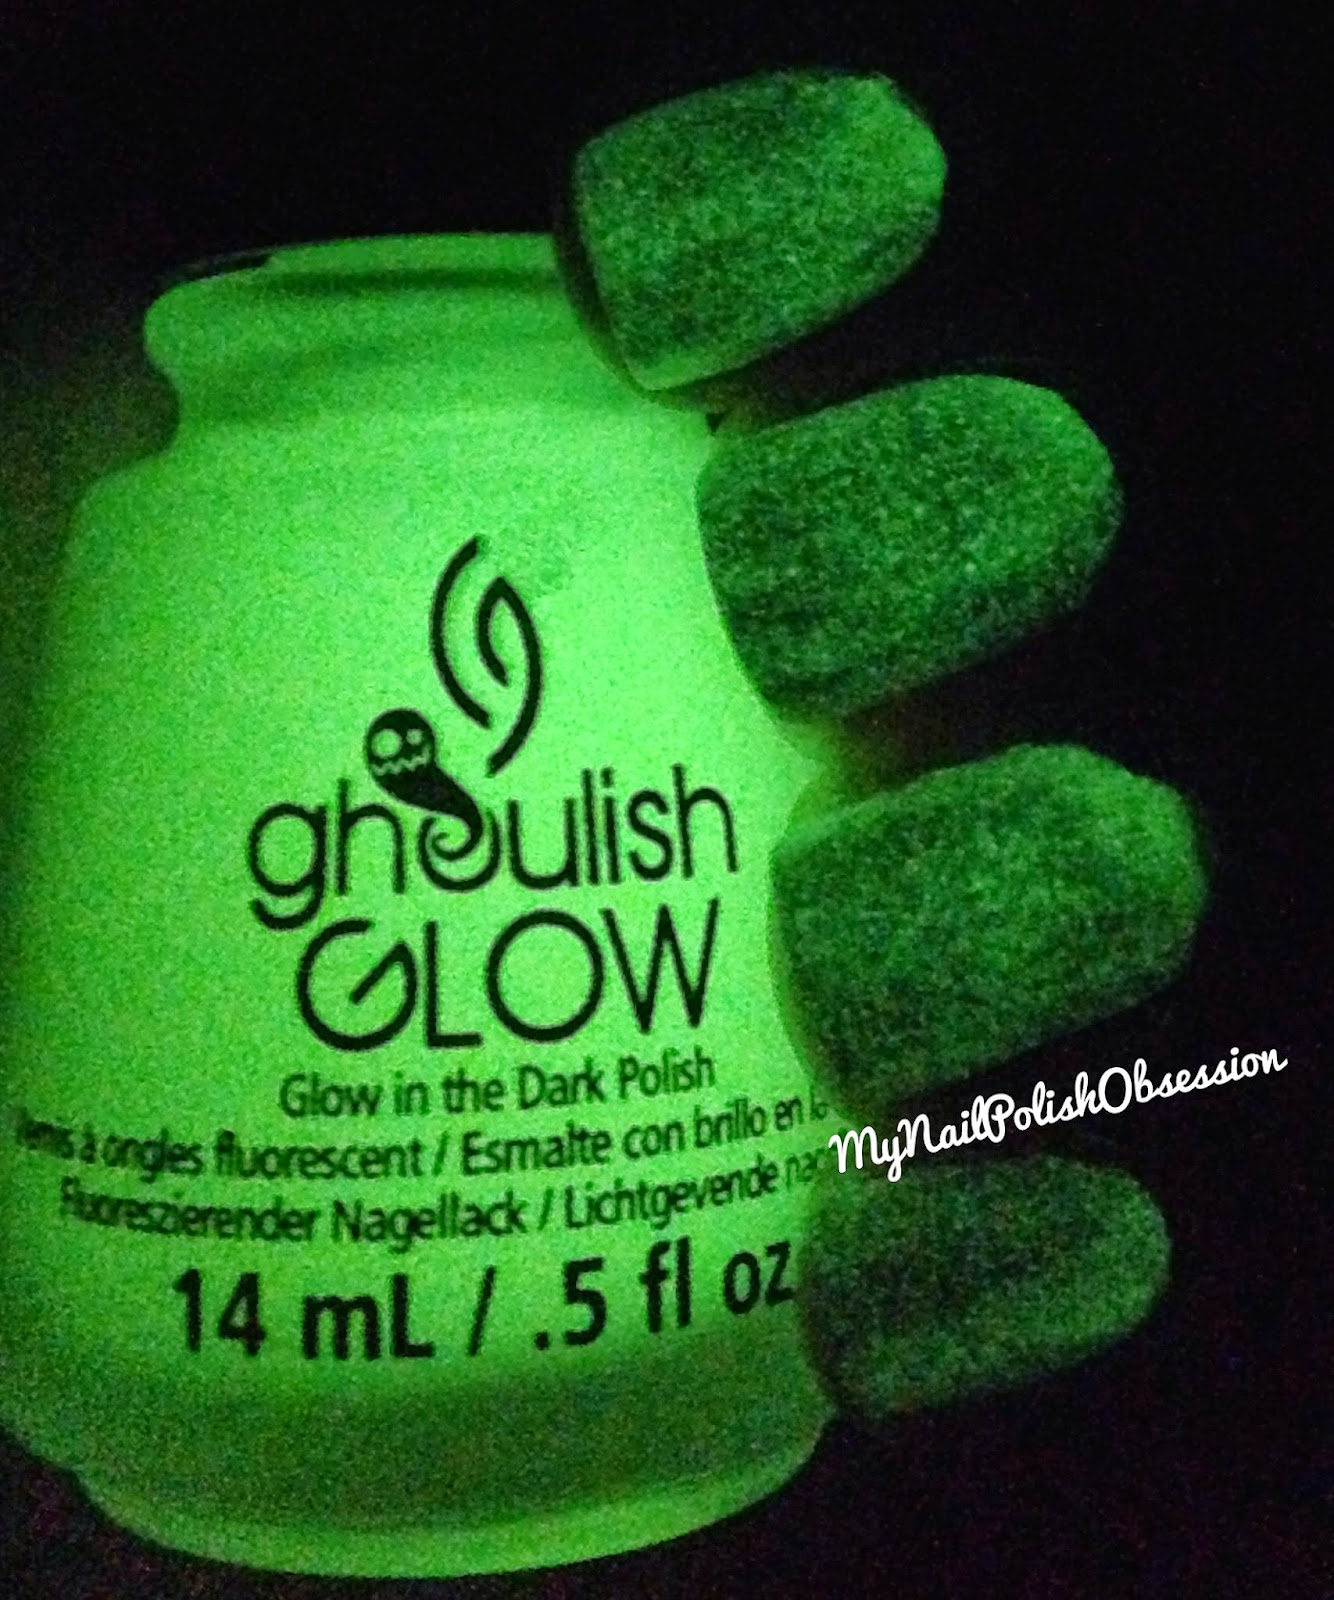 China Glaze Ghoulish Glow